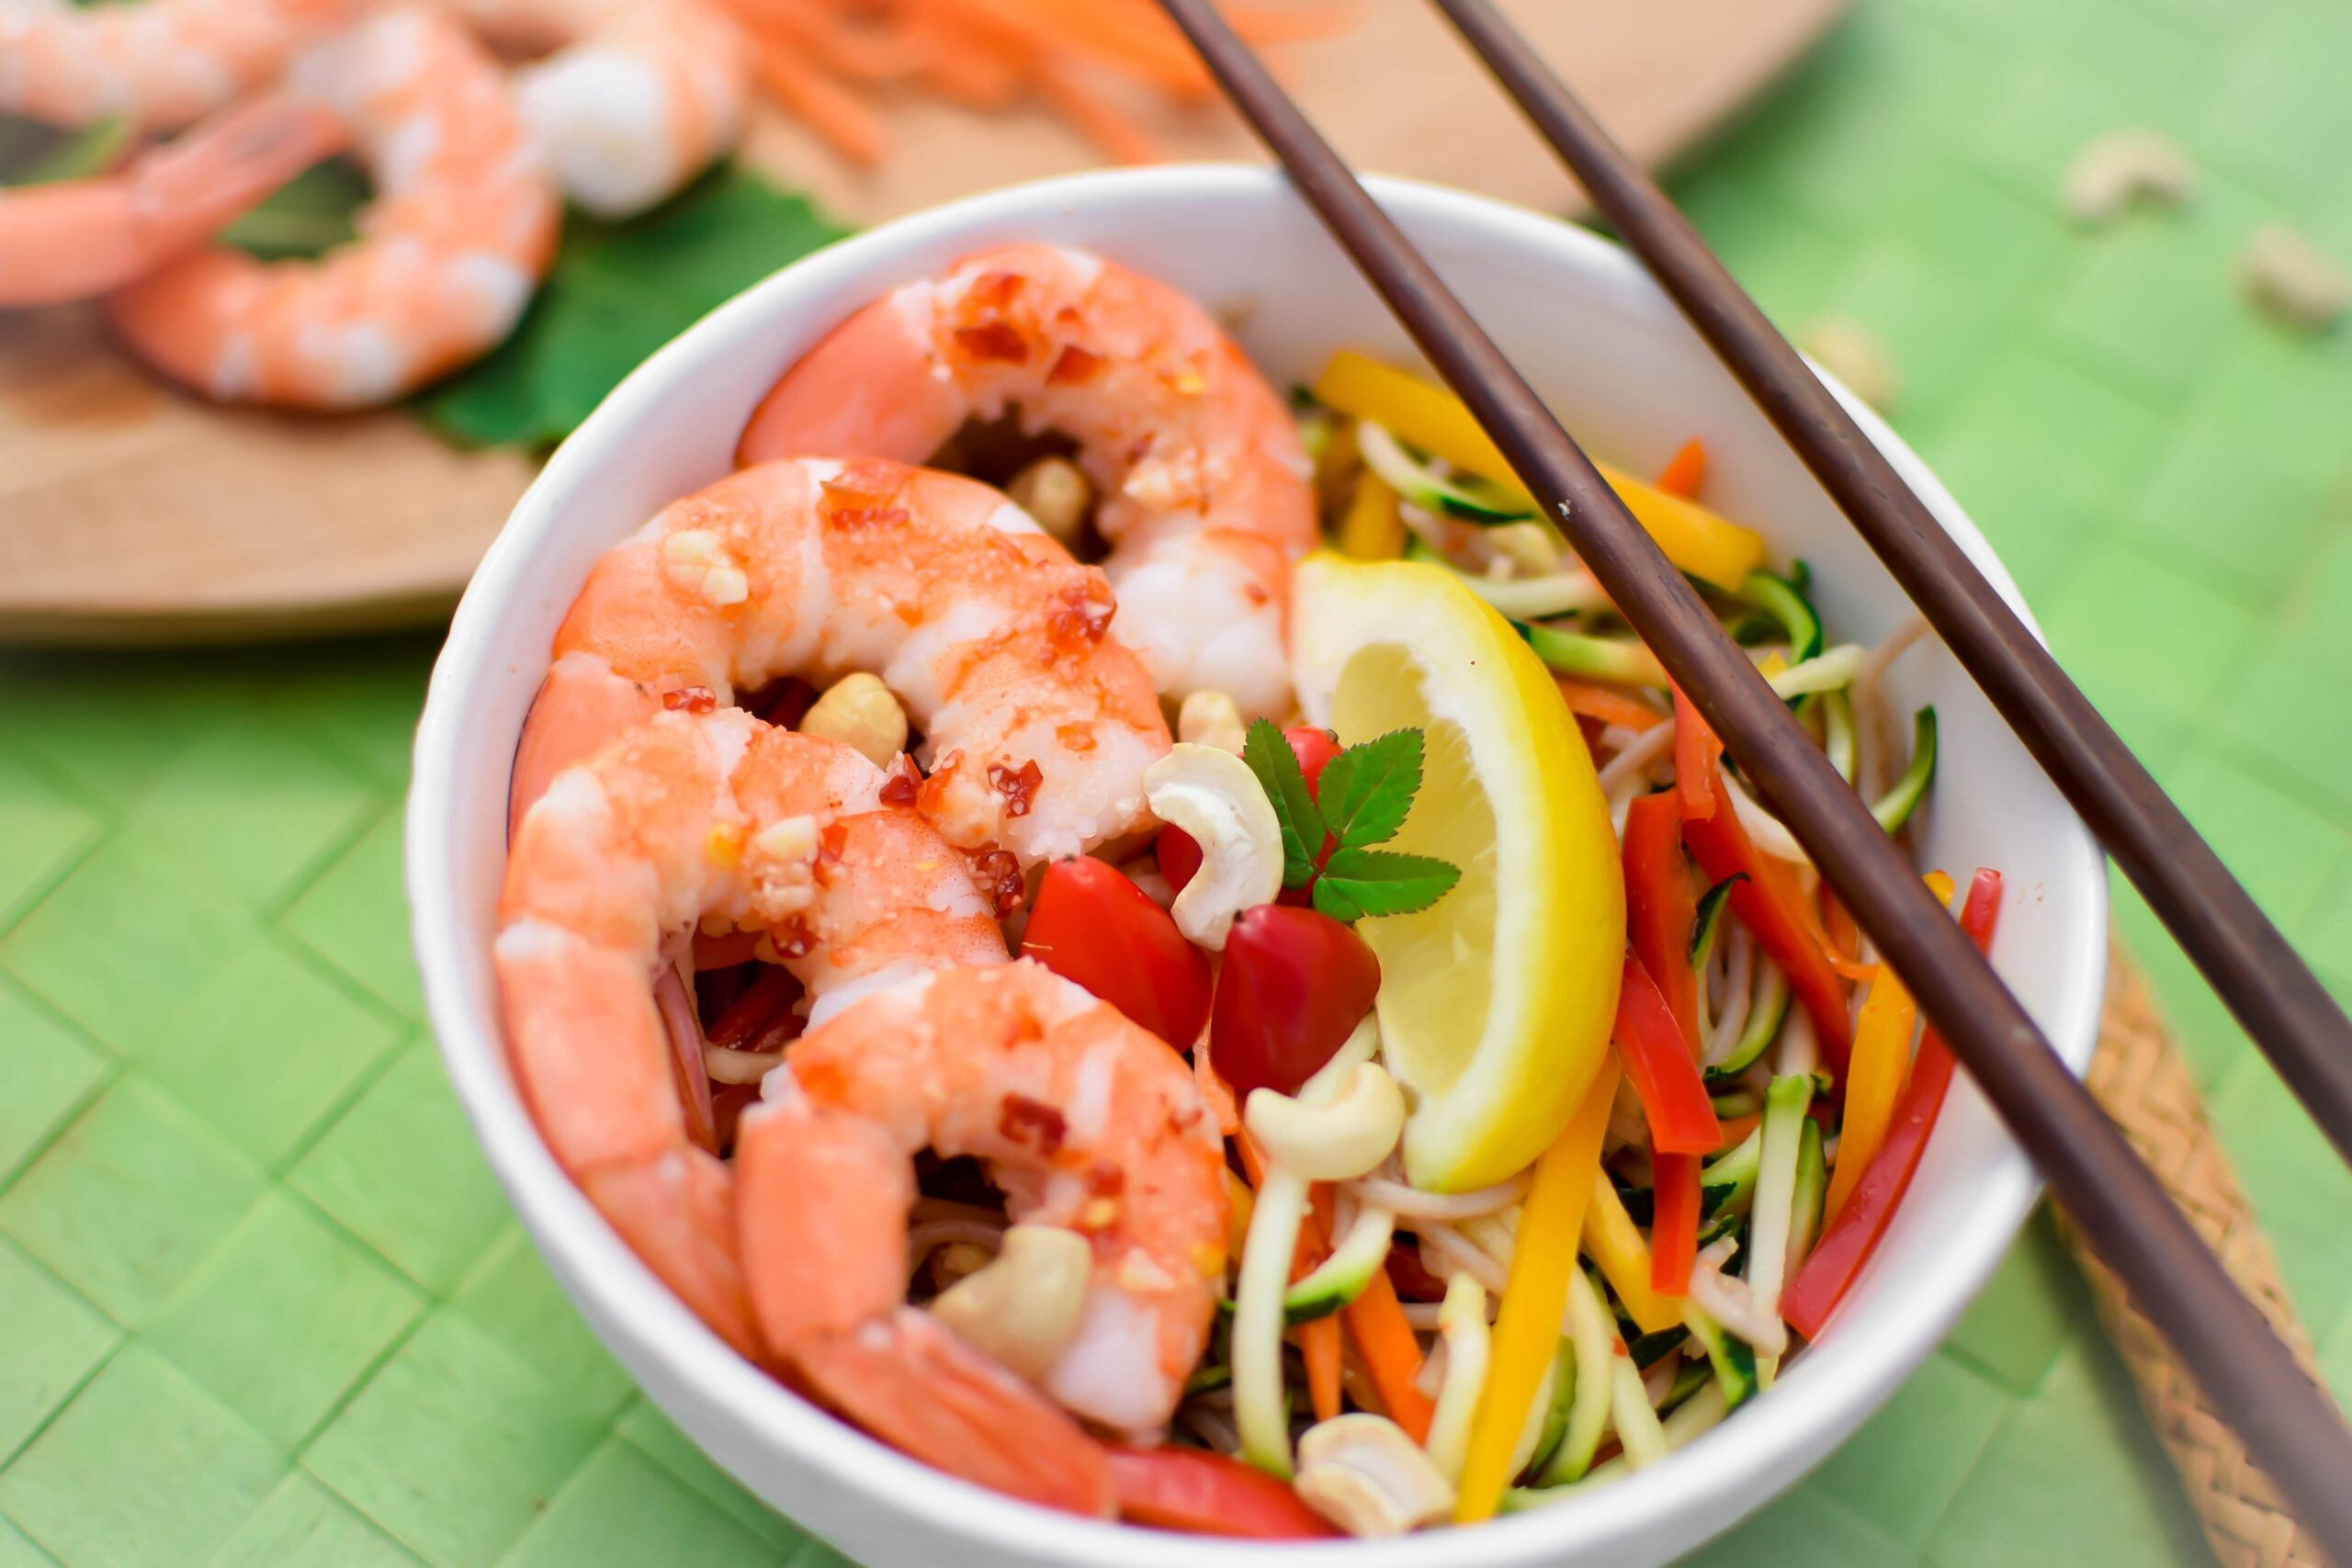 Spicy Thai Shrimp Bowl | A quick and easy meal that is packed with lean protein, veggies, and is naturally gluten-free! Enjoy! | @EmKyleNutrition